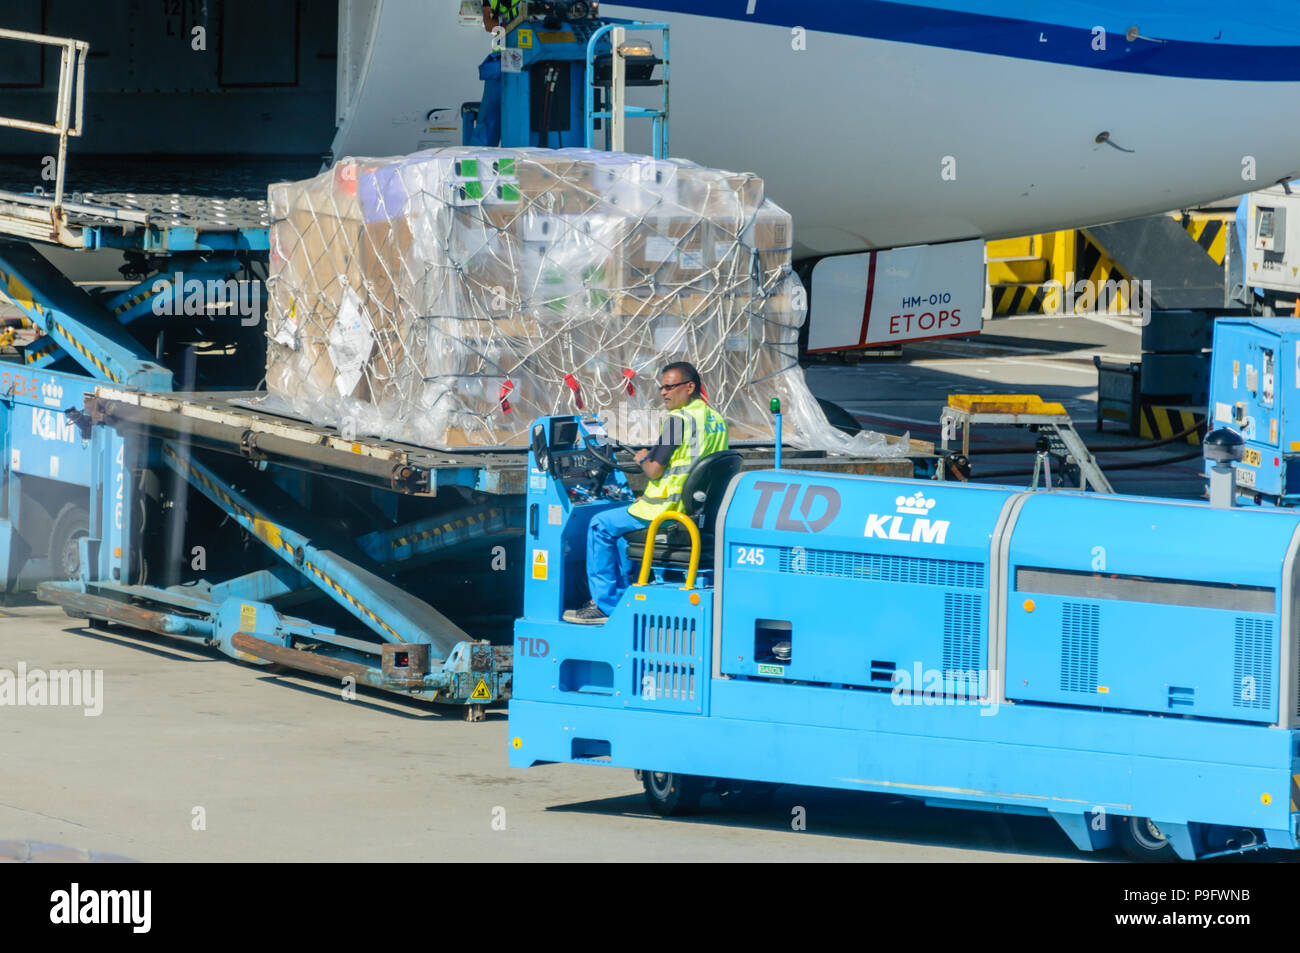 KLM ground crew load freight into the hold of a KLM Boeing 787-9 - Stock Image